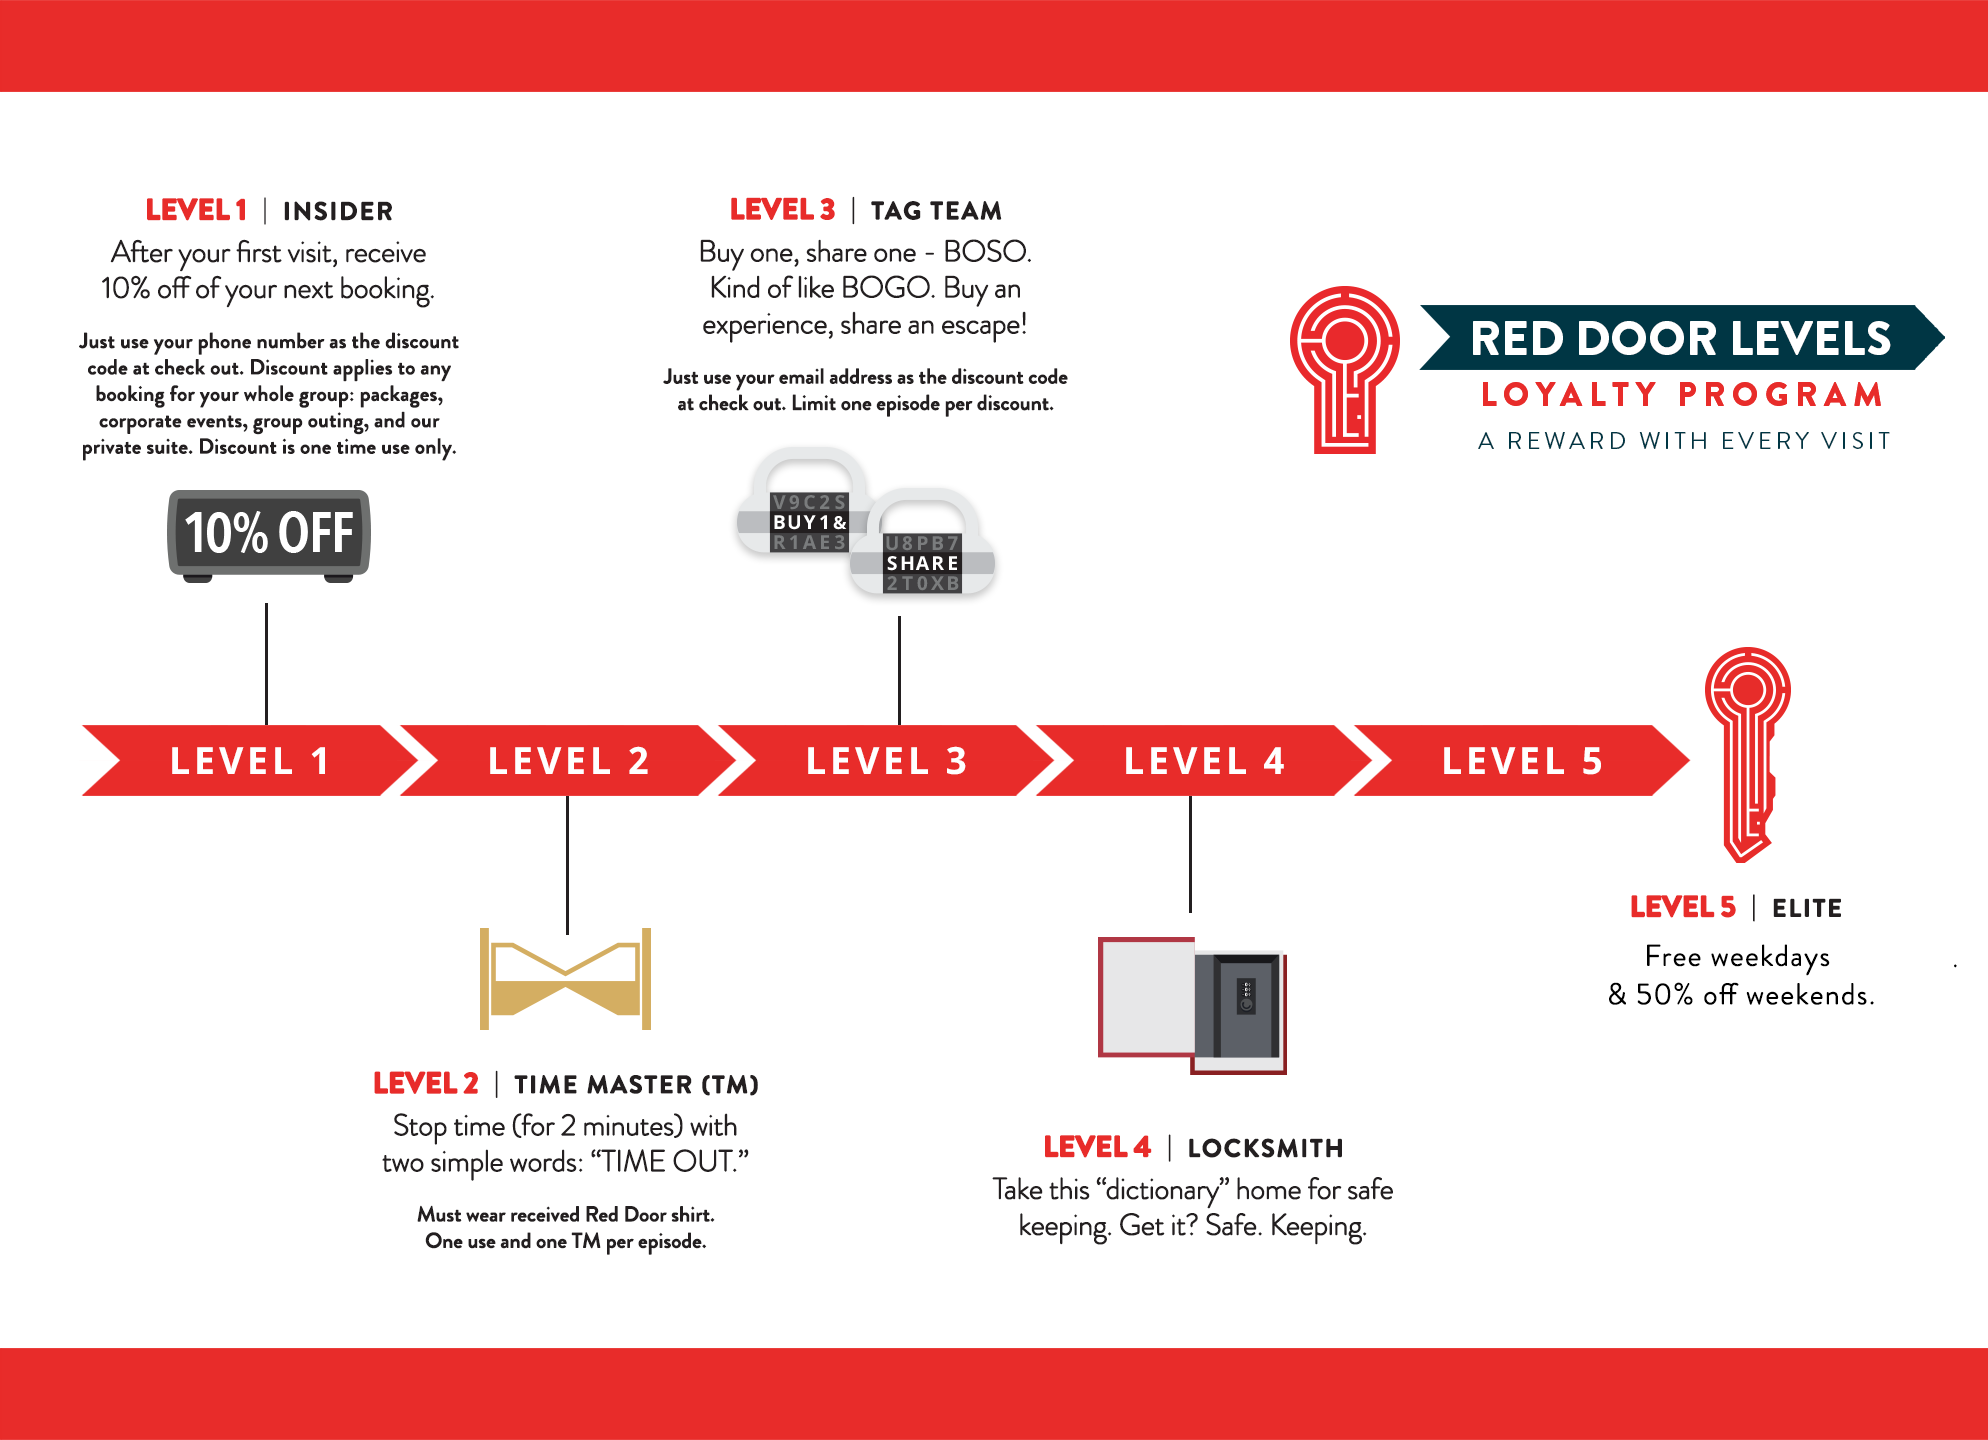 Red Door Loyalty Program